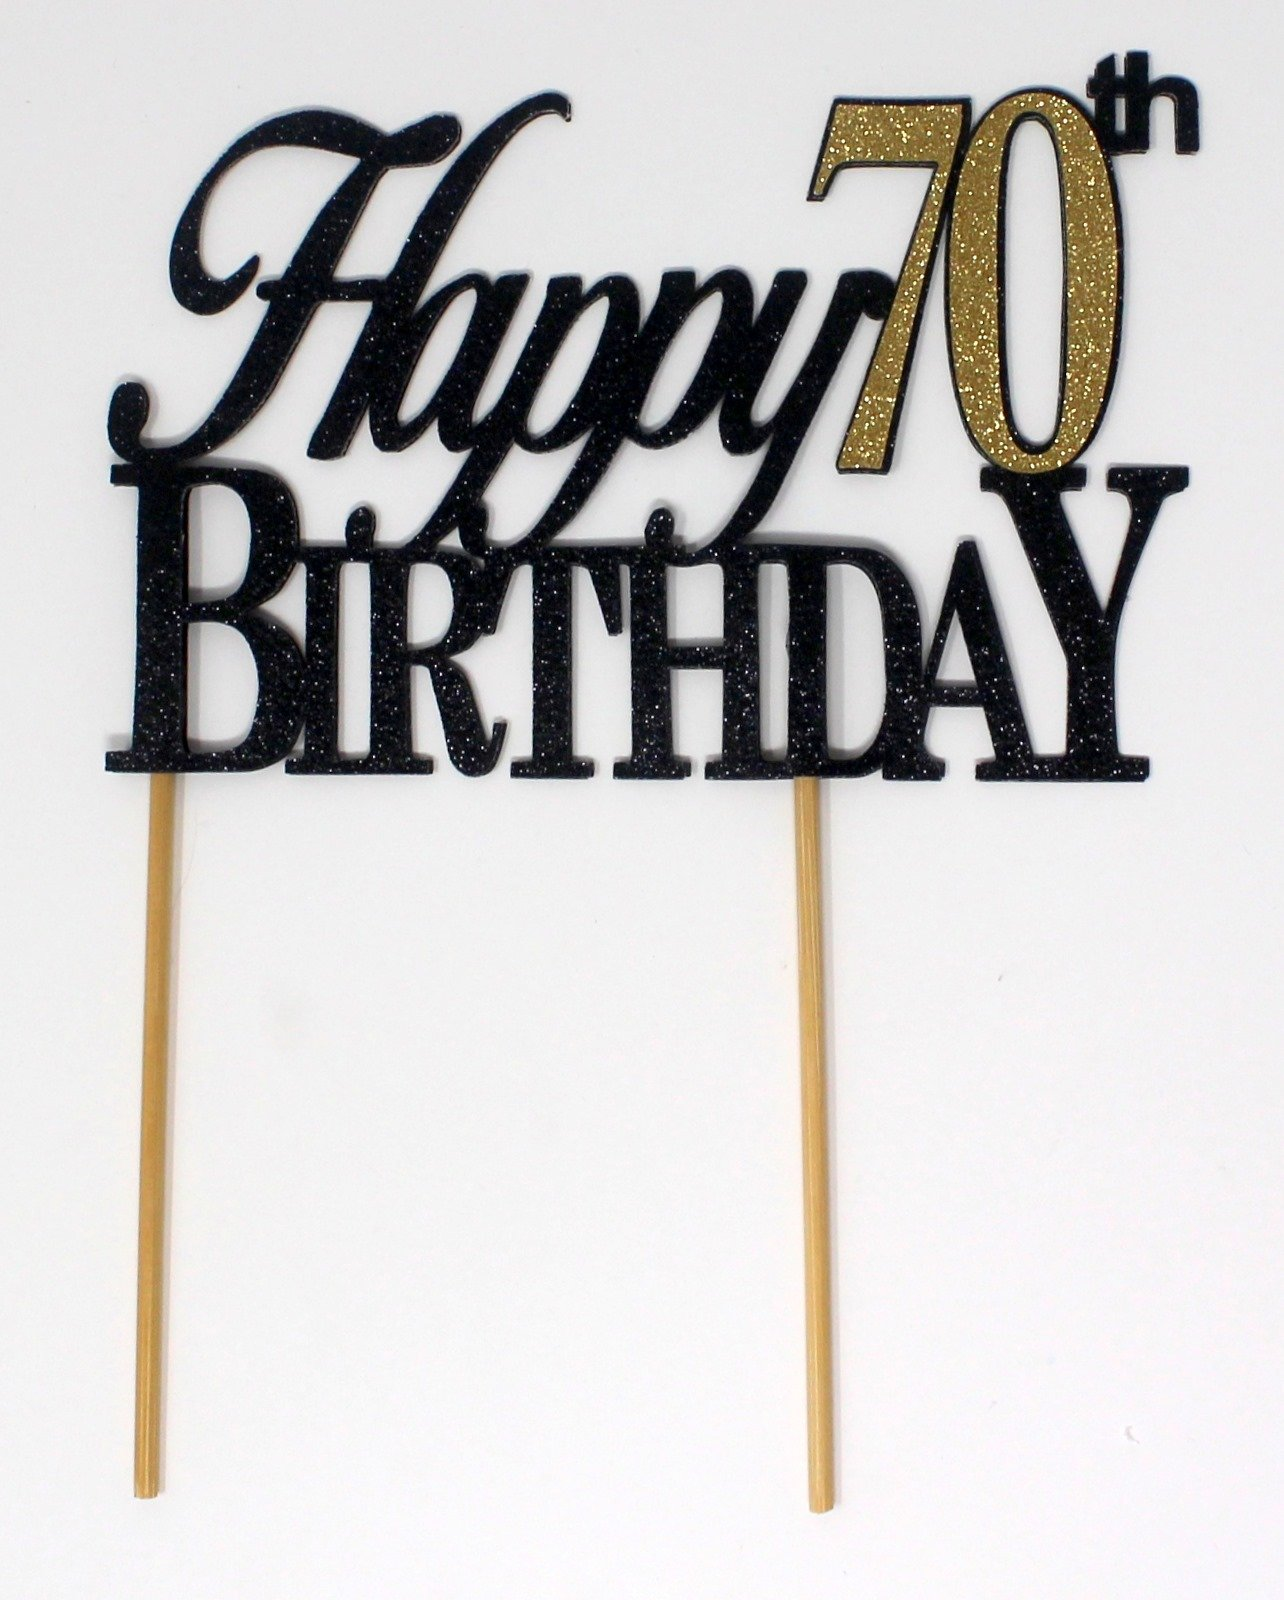 All About Details Happy 70th Birthday Cake Topper,1pc, 70th Birthday, Cake Decoration, Party Decor (Black & Gold)